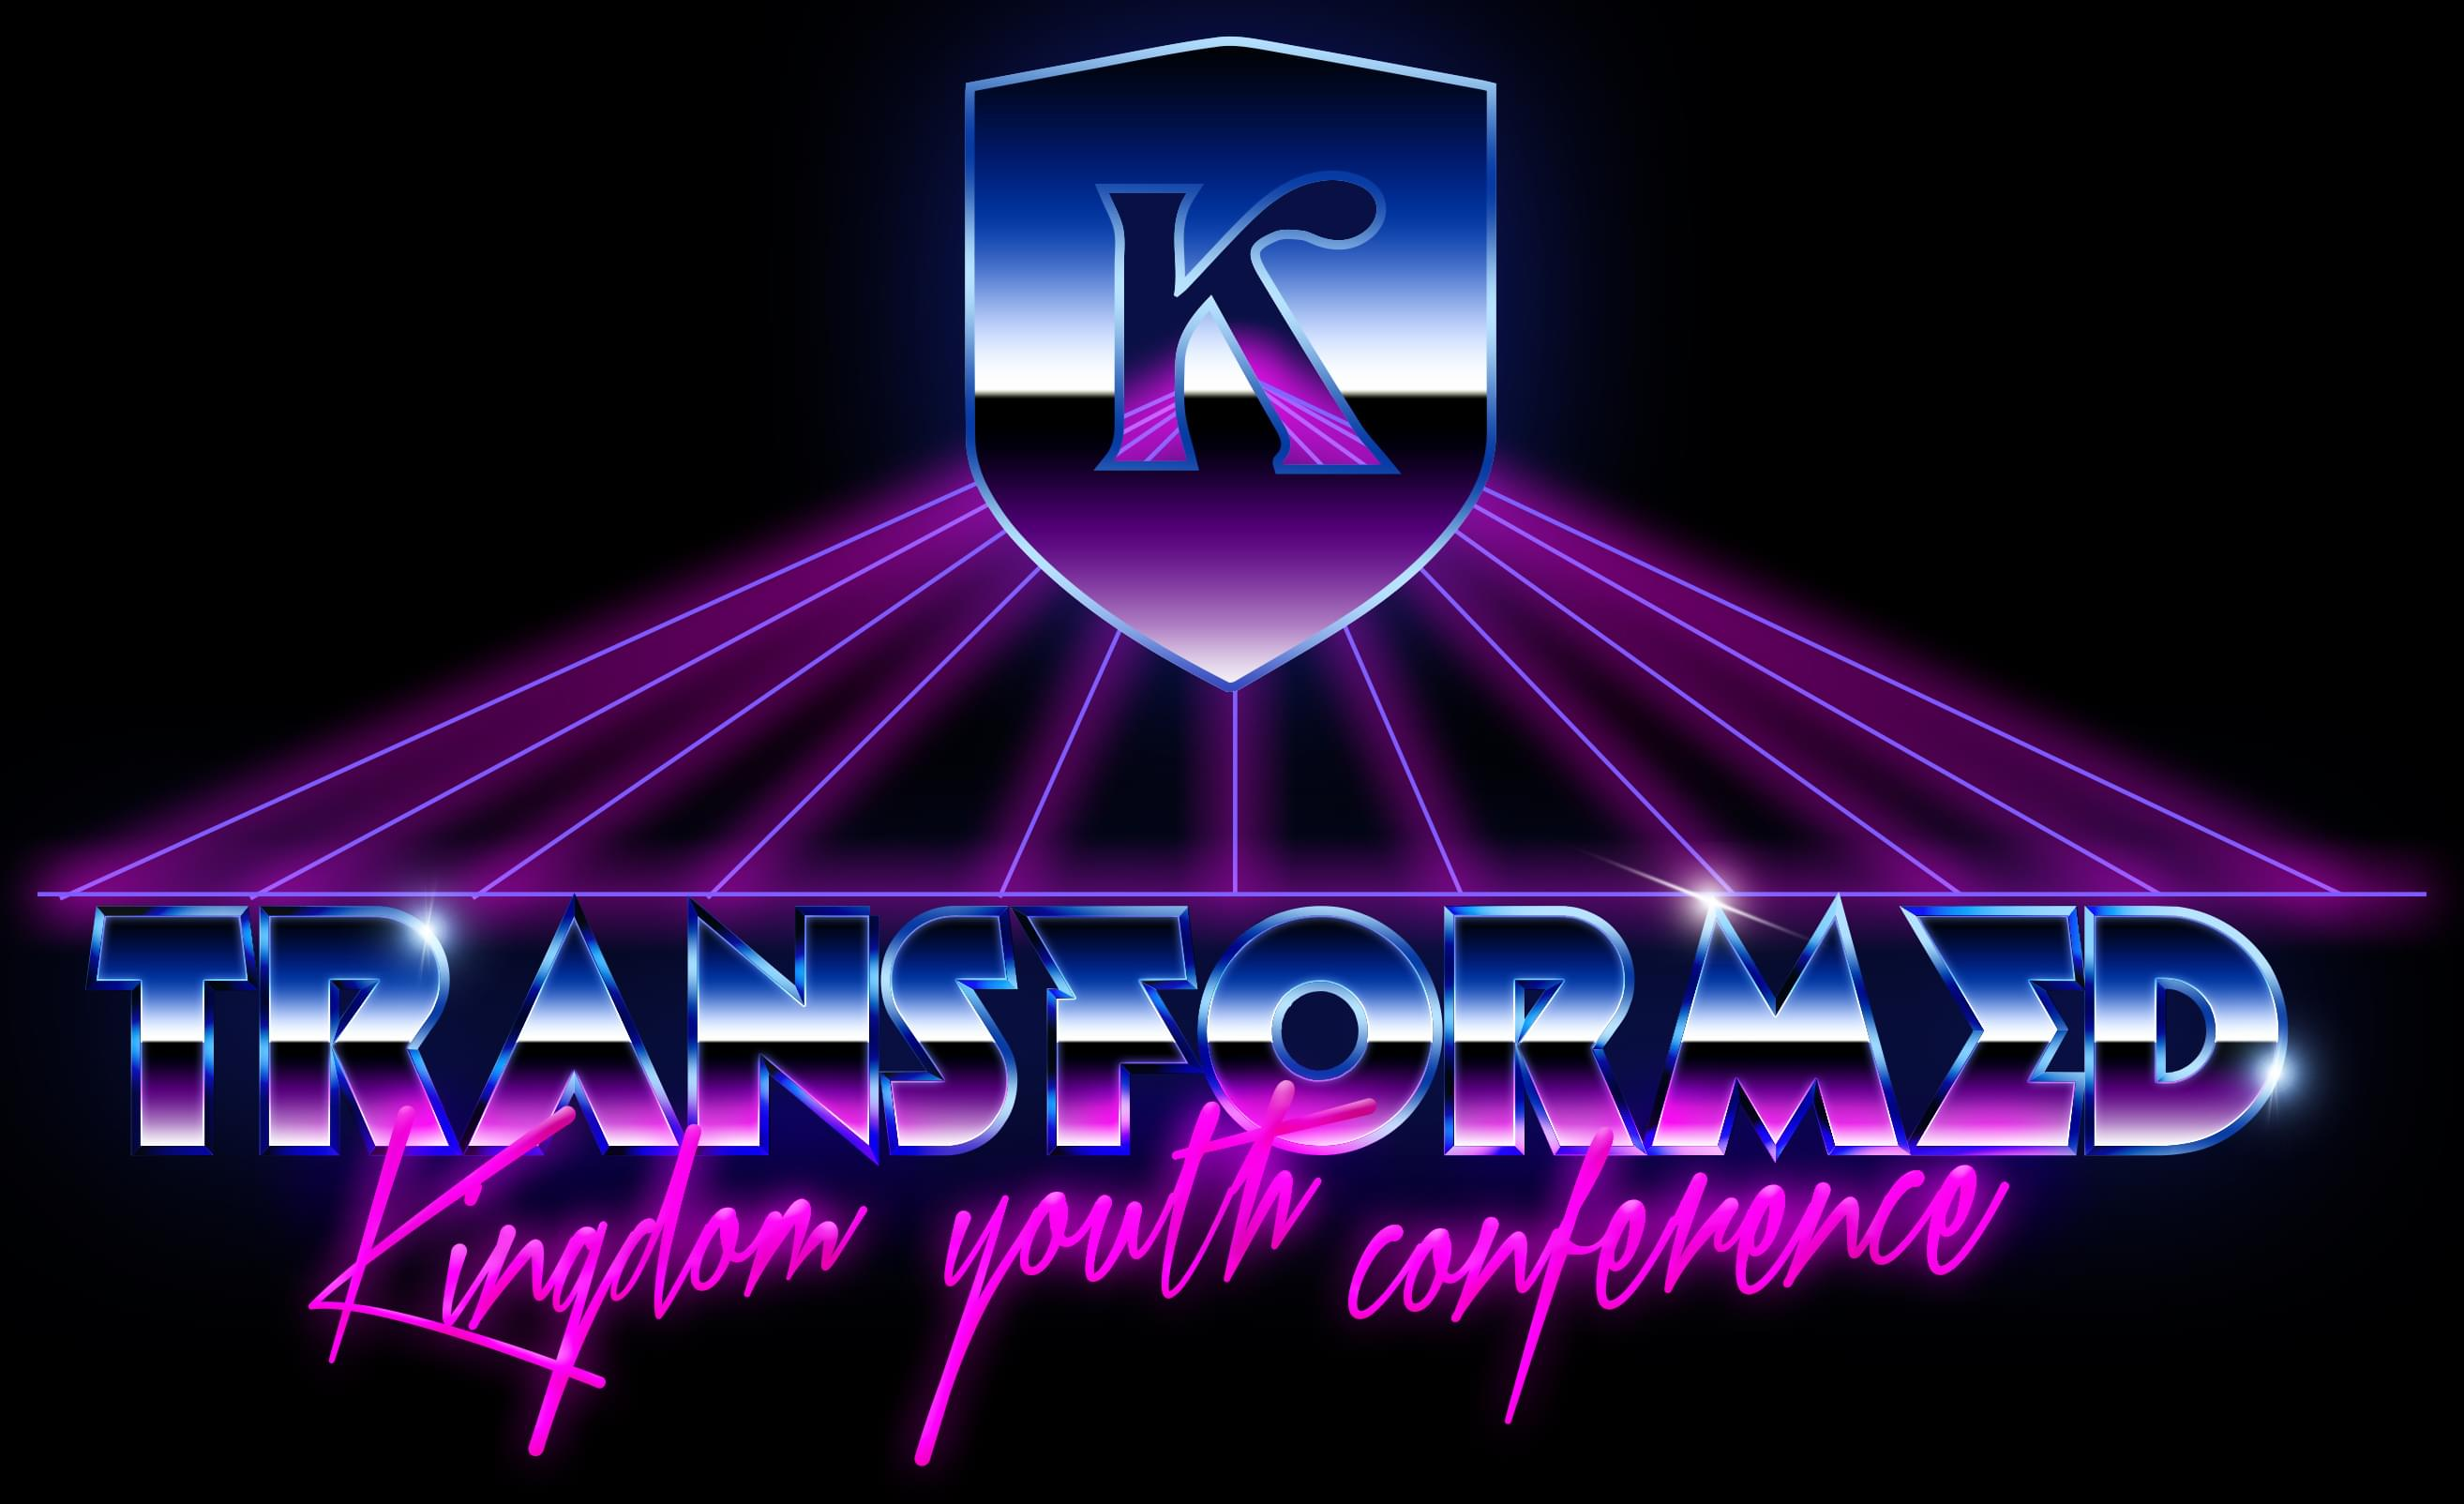 Kingdom Youth Conference